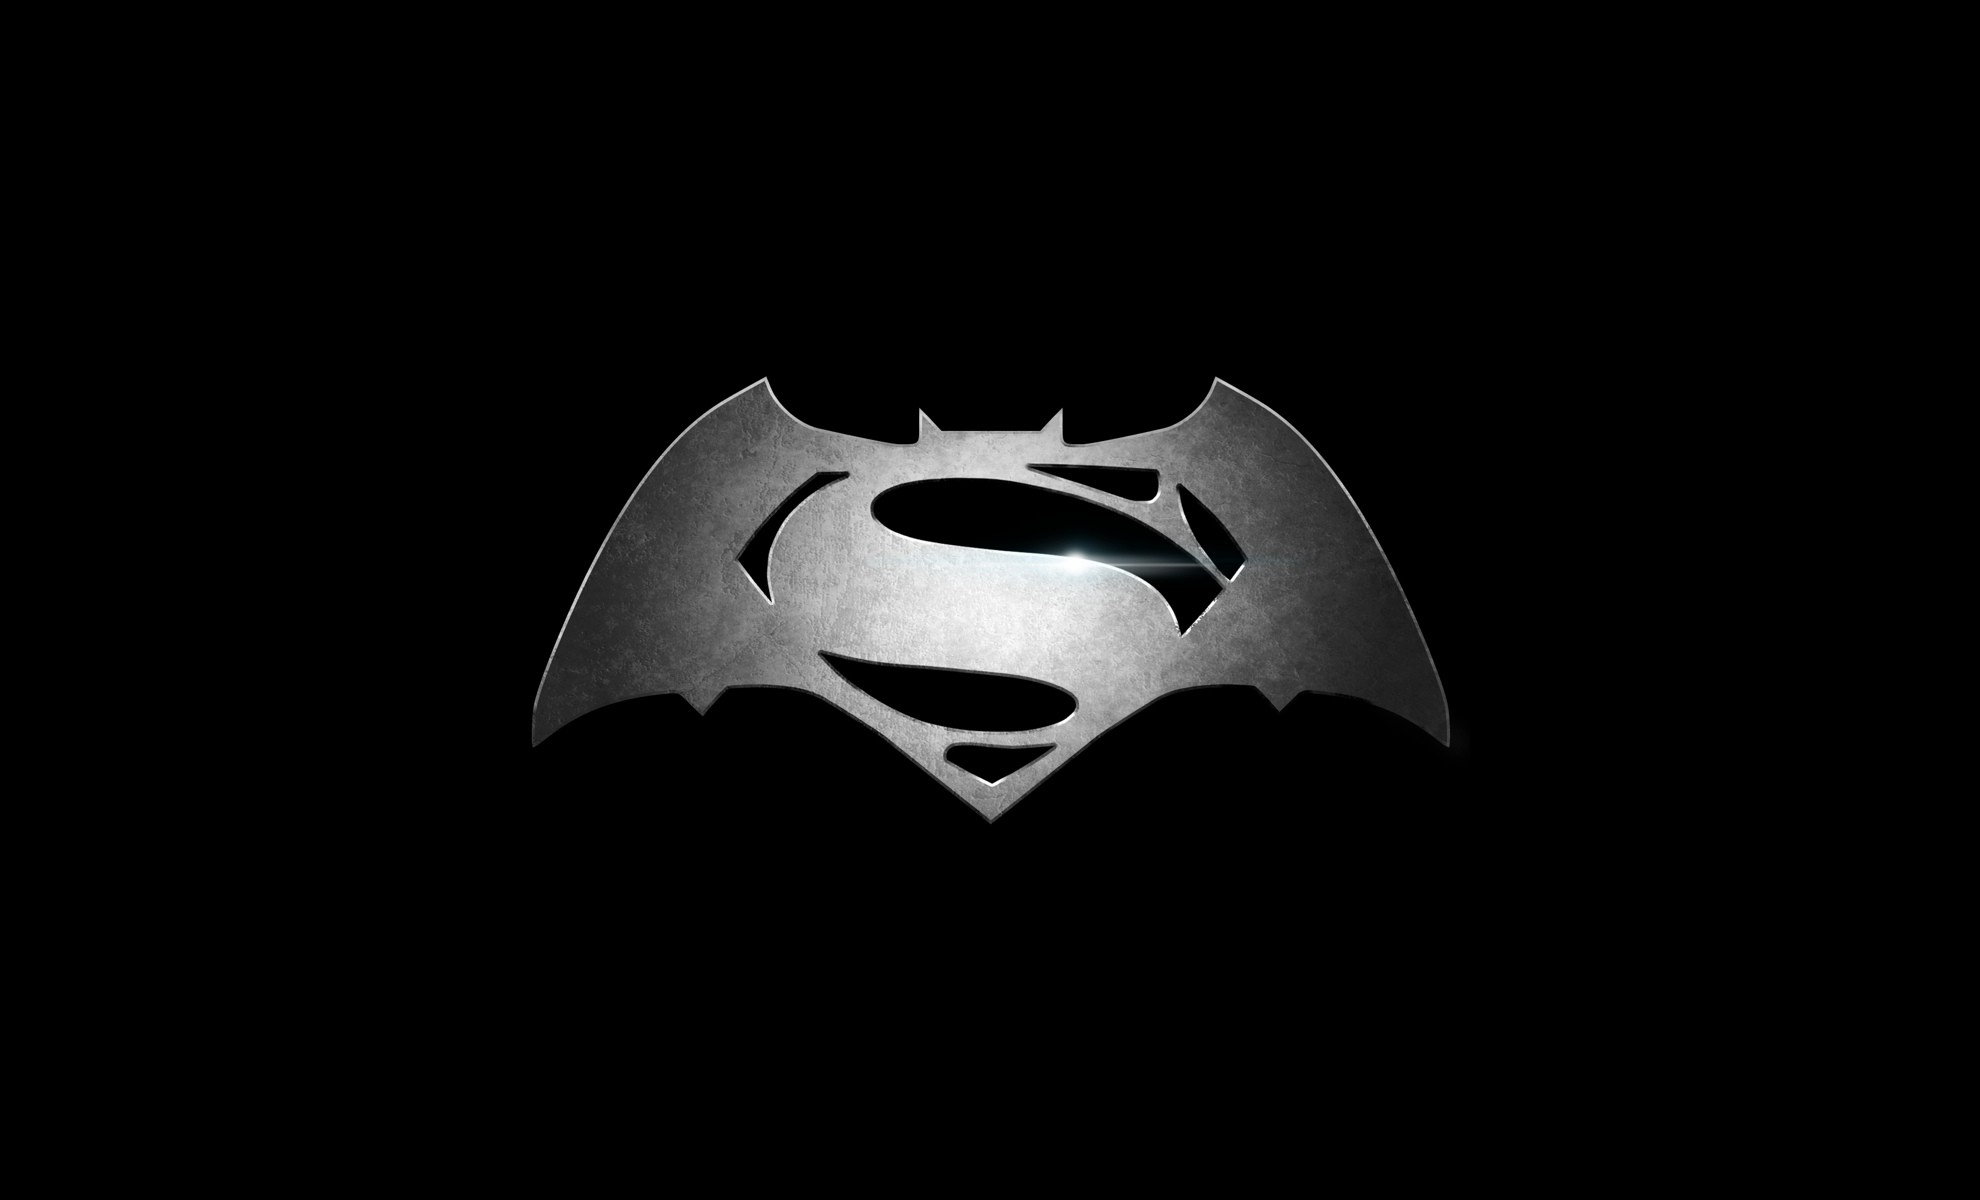 Batman Vs Superman 1080p Wallpapers 77 Images